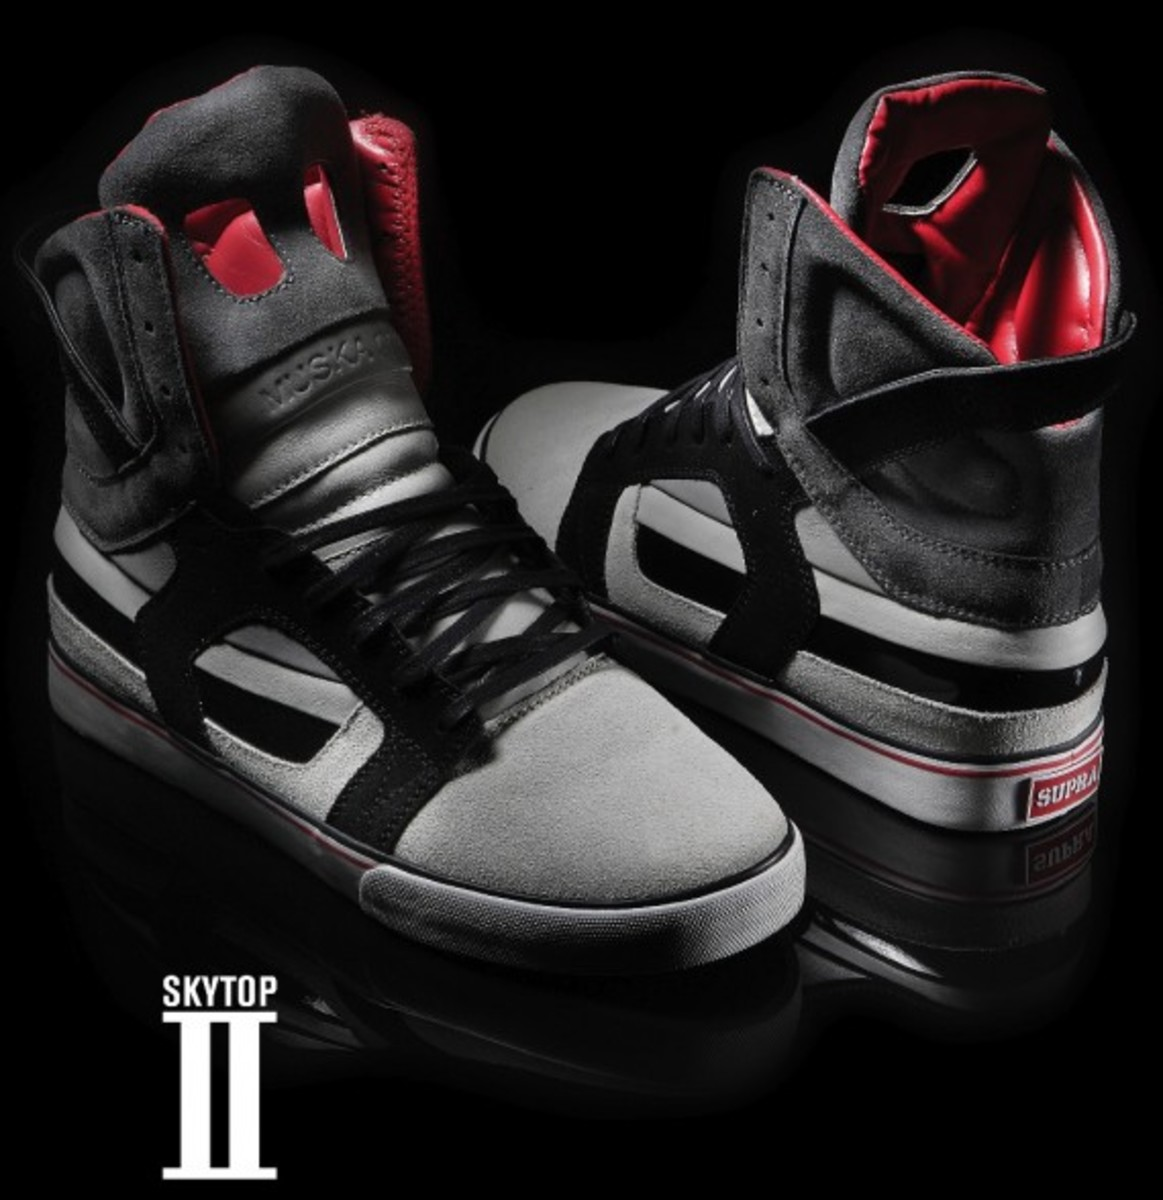 supra-skytop-ii-world-tour-official-dates-01